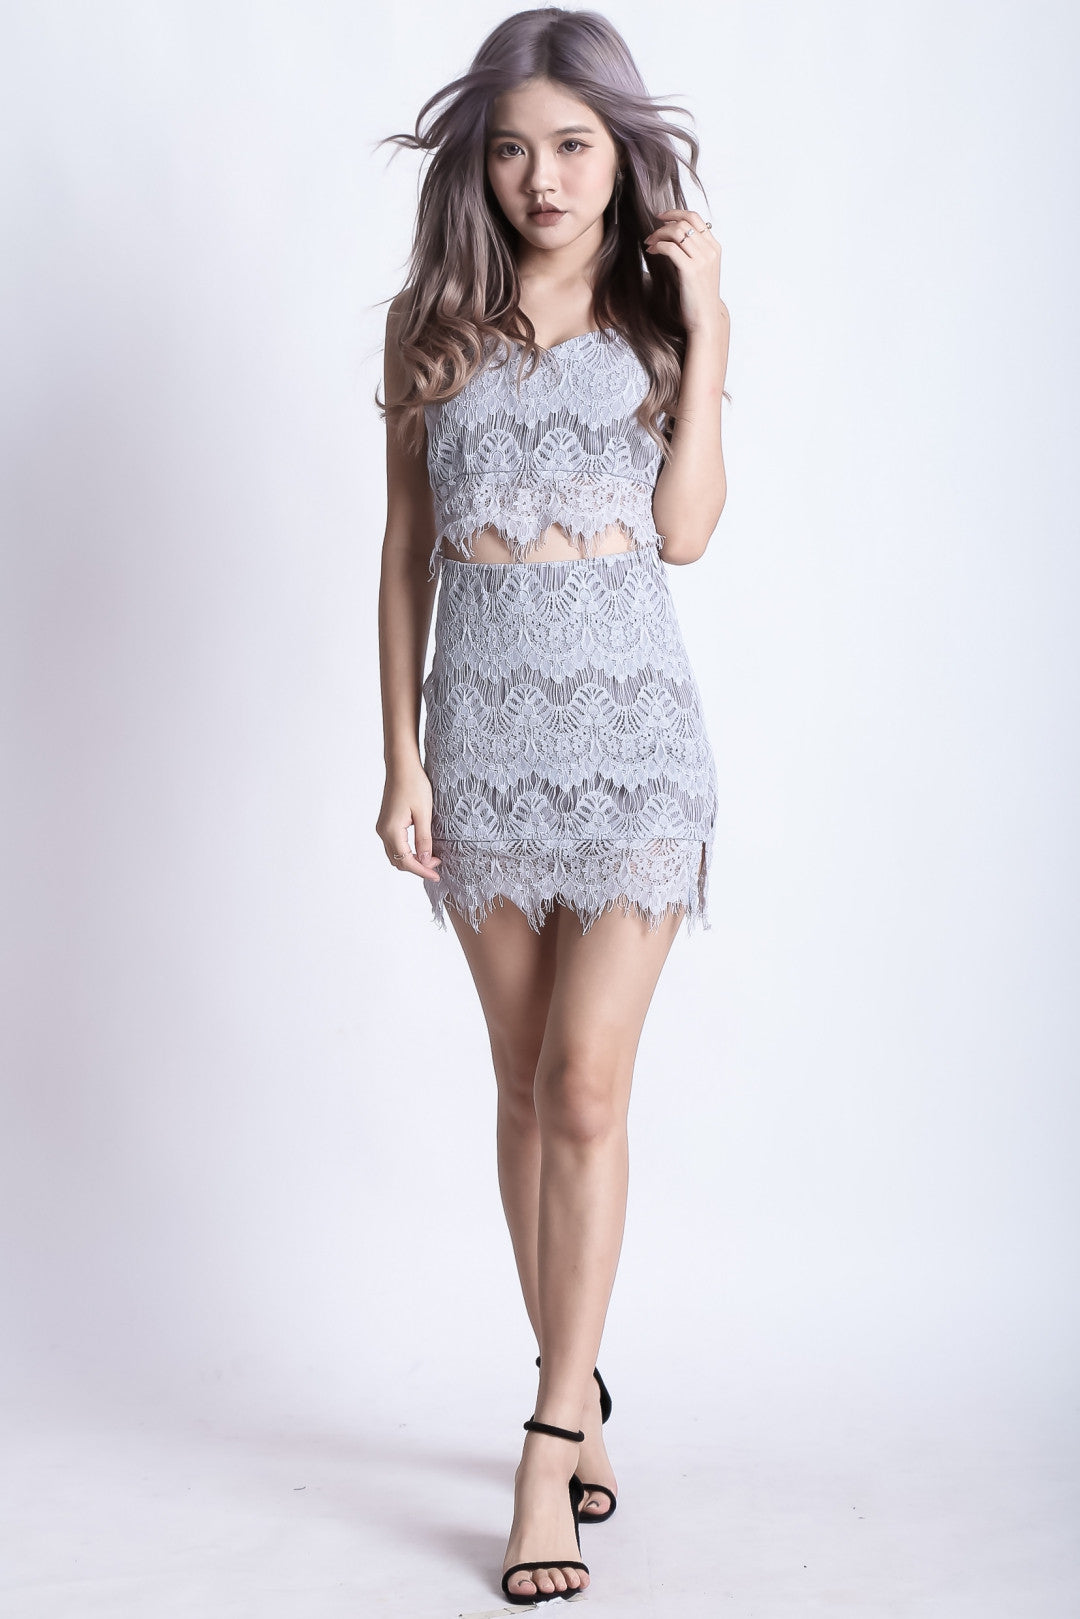 (RESTOCKED) TIARA LACE TOP IN GREY - TOPAZETTE